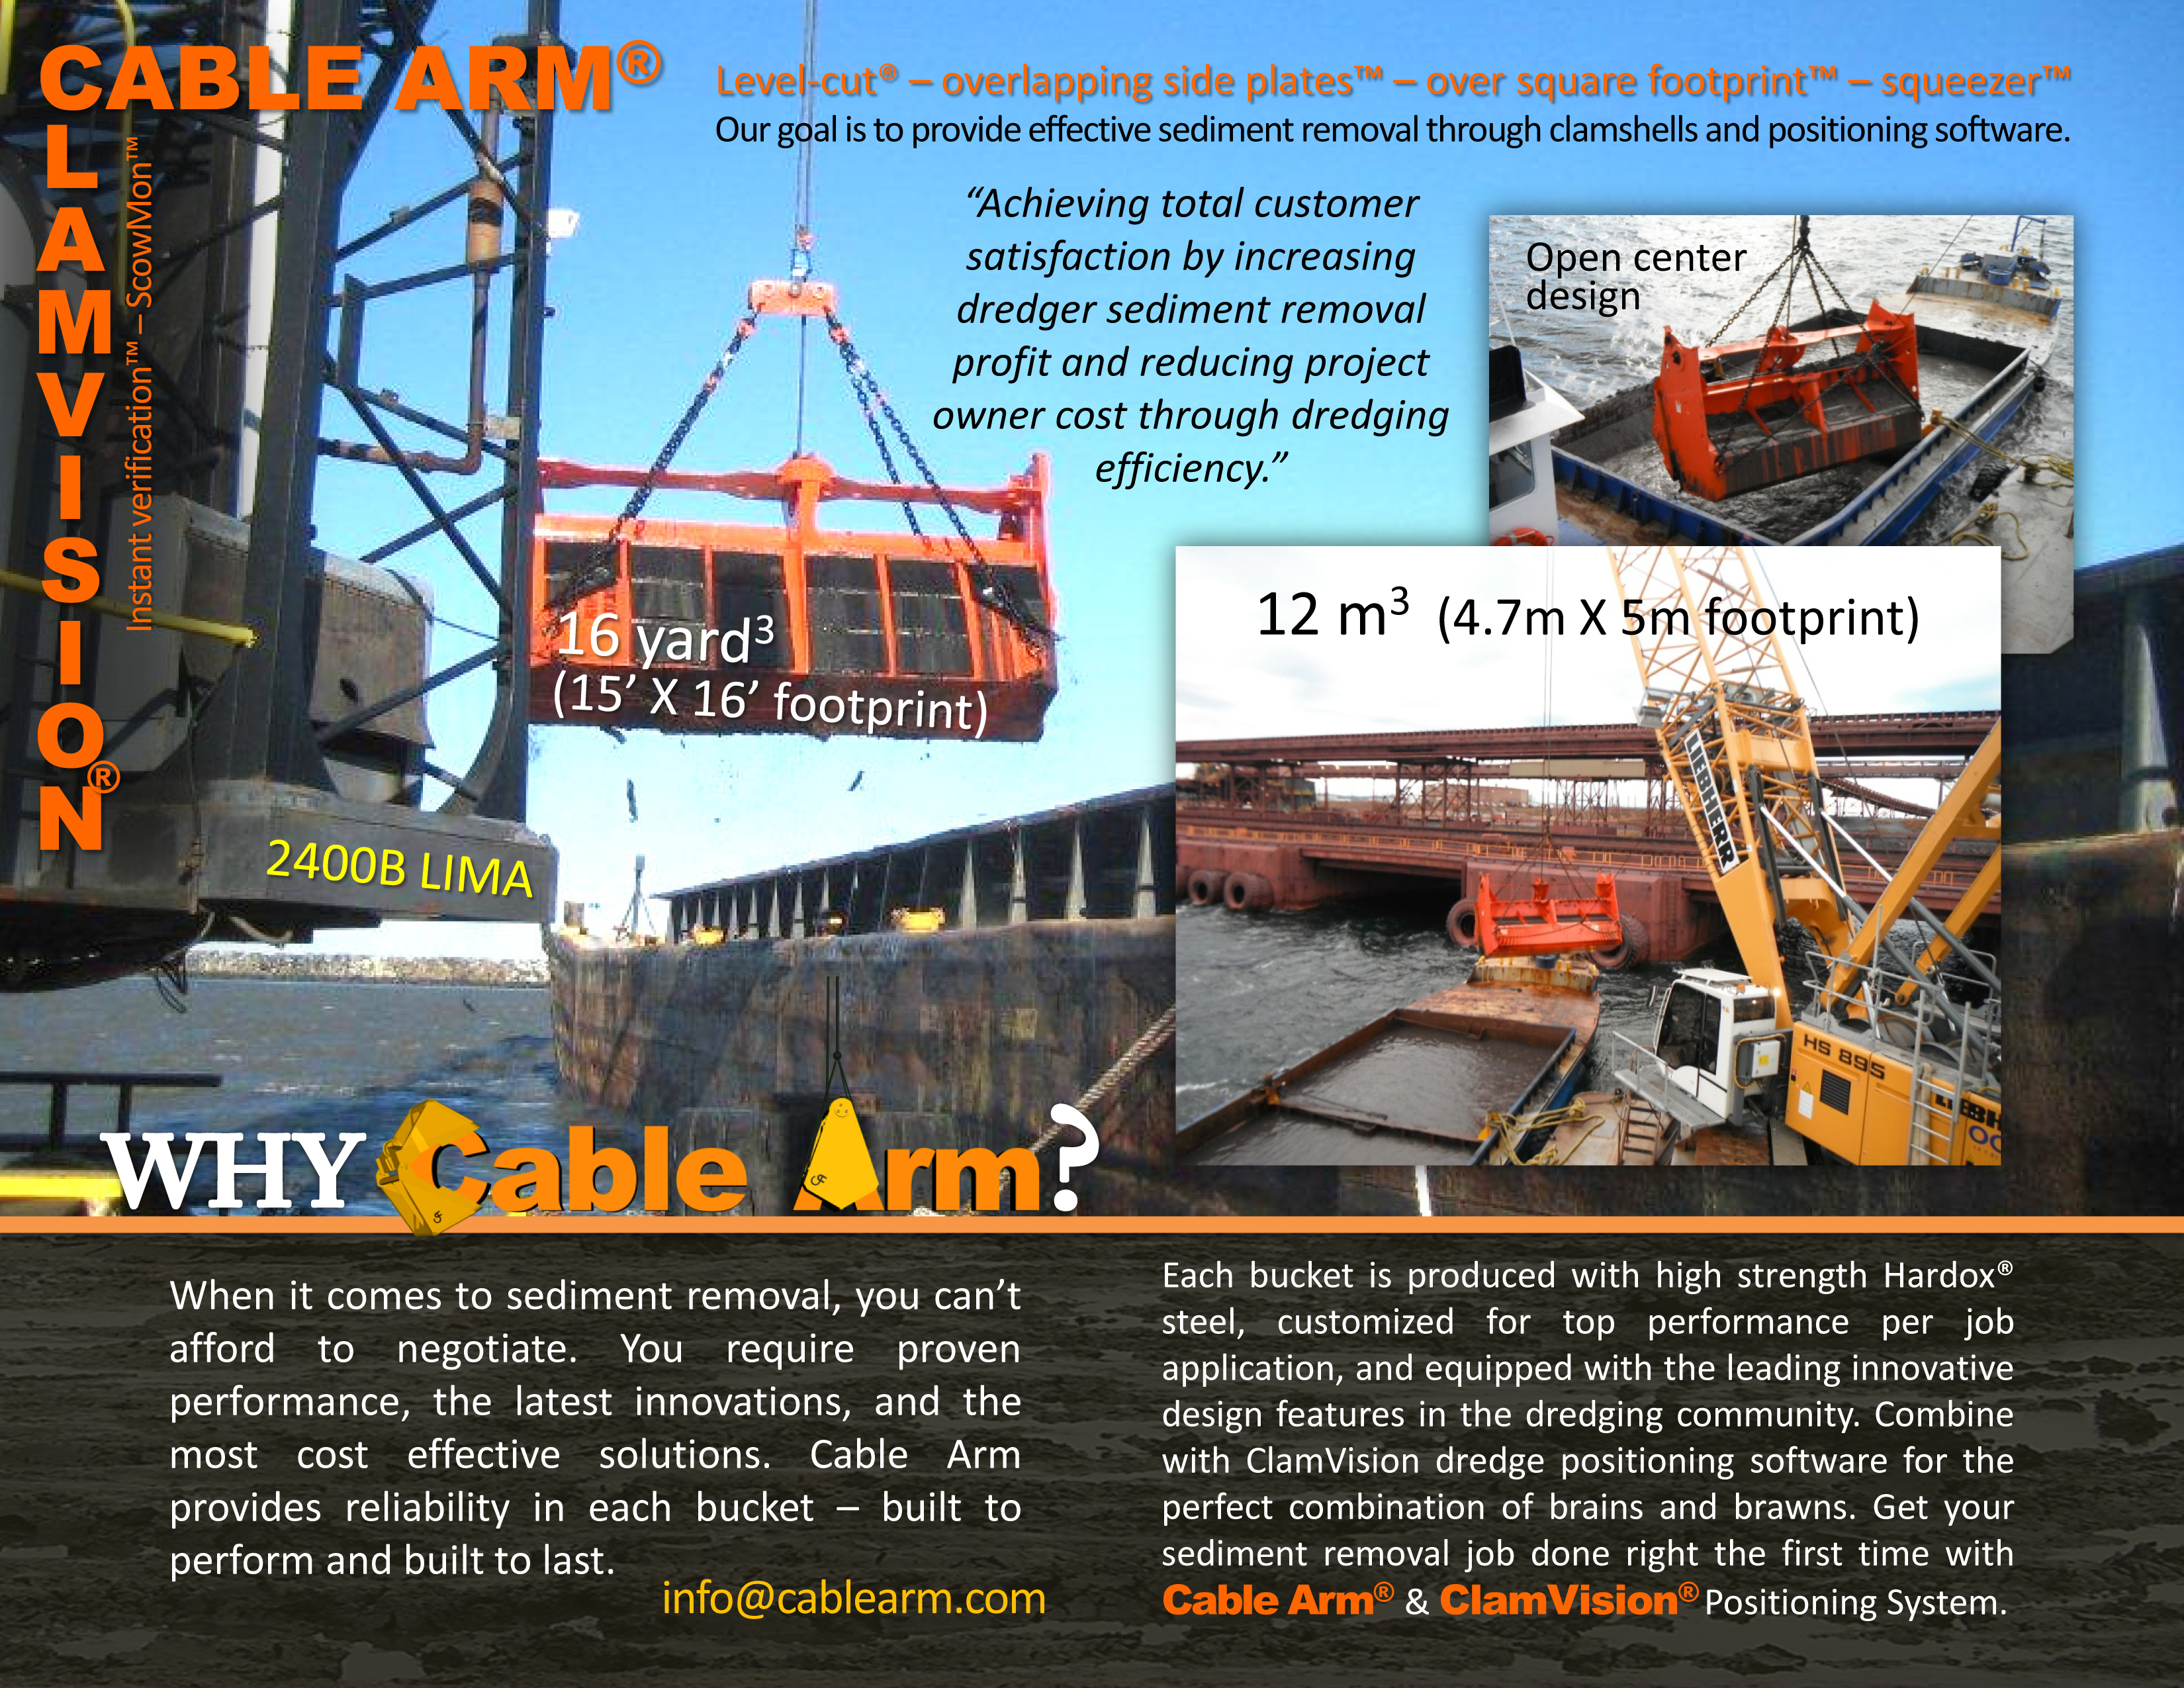 Cable Arm Media